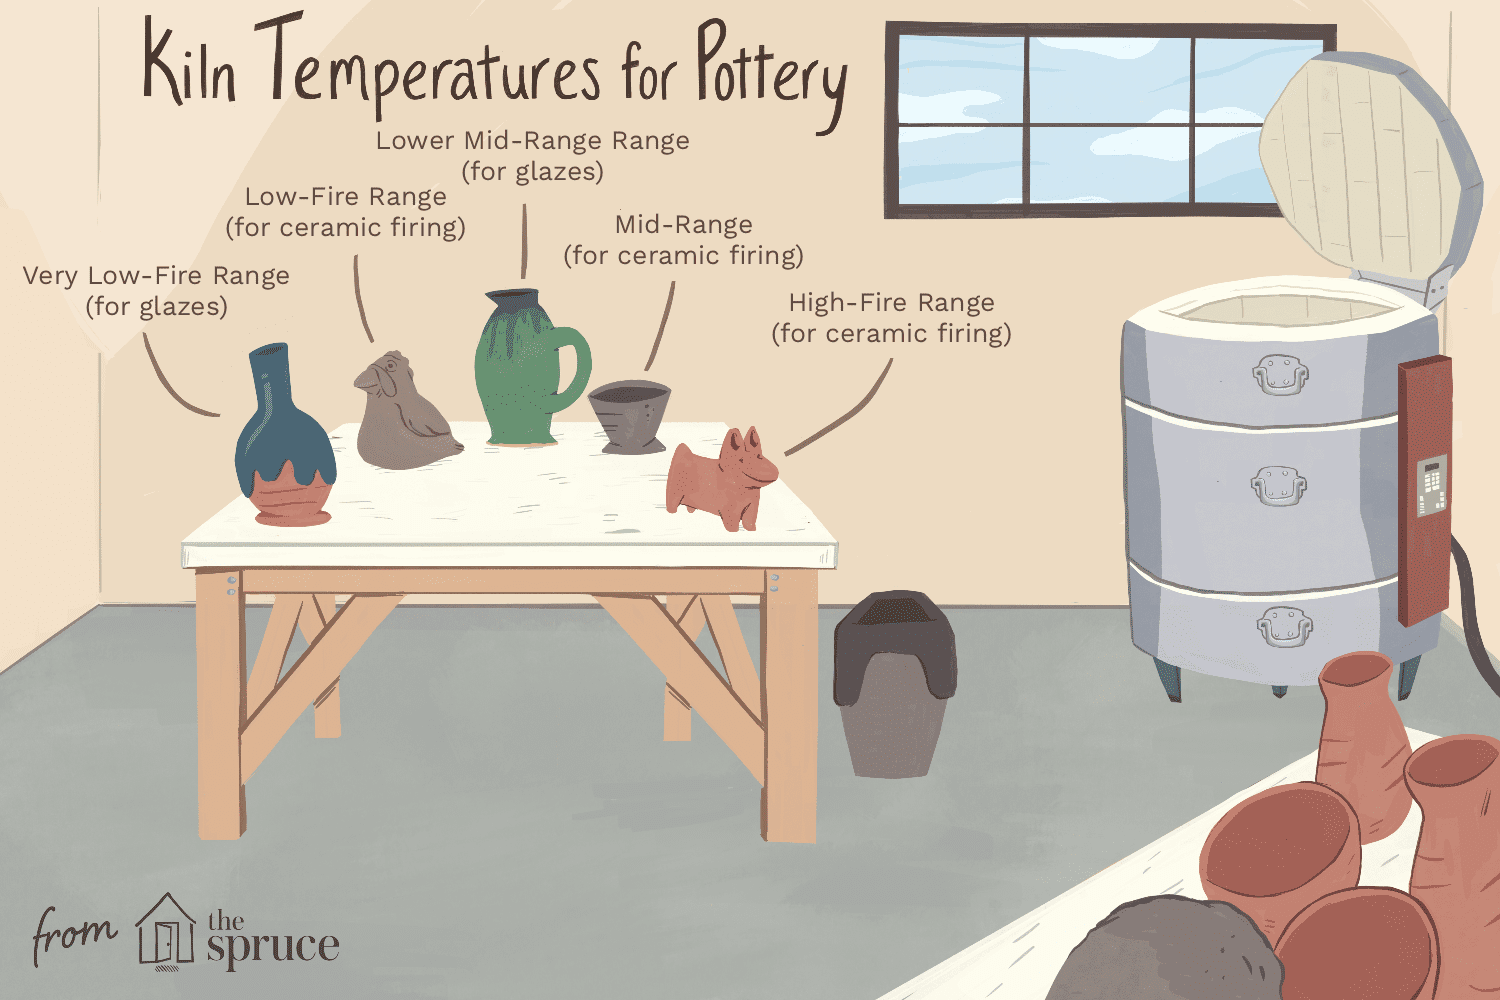 Temperature firing ranges in pottery